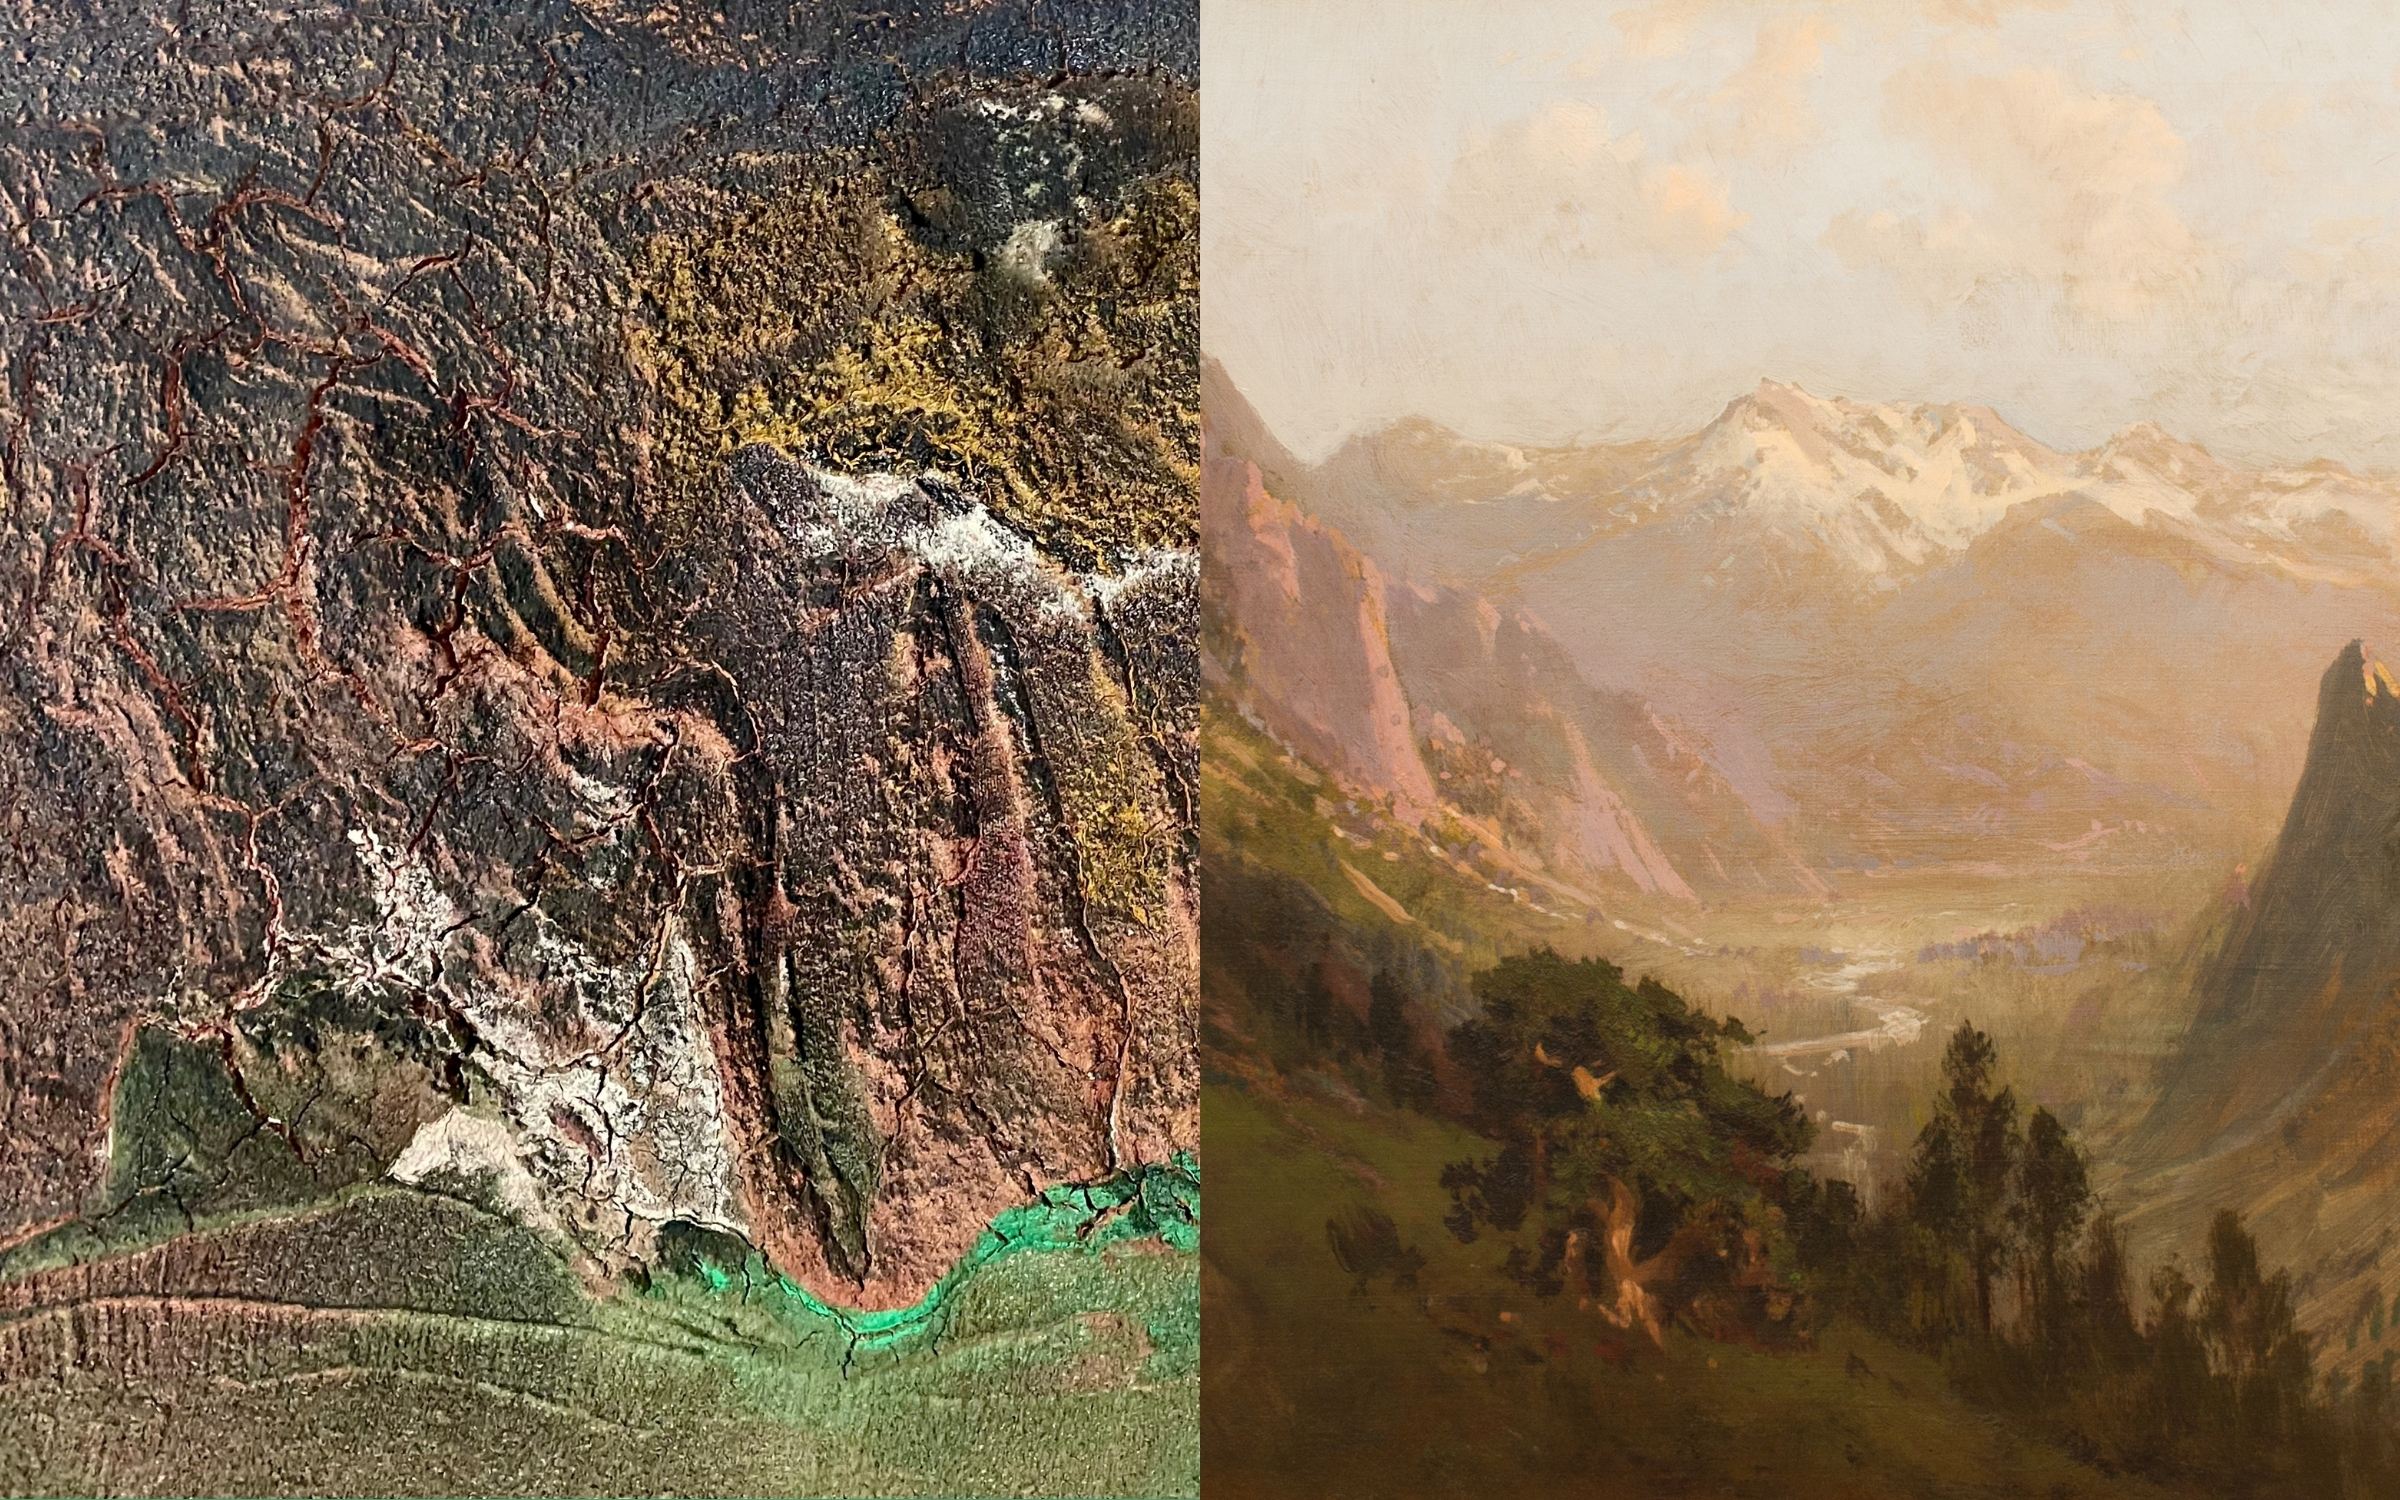 Image: detail left, Milton Komisar (1935) Techtonic Plates, 2003, Acrylic and concrete on canvas, Gift of the artist, Saint Mary's College Museum of Art Permanent Collection. [4.2006.2] detail right, William Keith (1838–1911) High Sierra Canyon (c. 1900–1905) Oil on canvas, Gift of Benjamin H. Lehman, Saint Mary's College Museum of Art Permanent Collection [0-91].